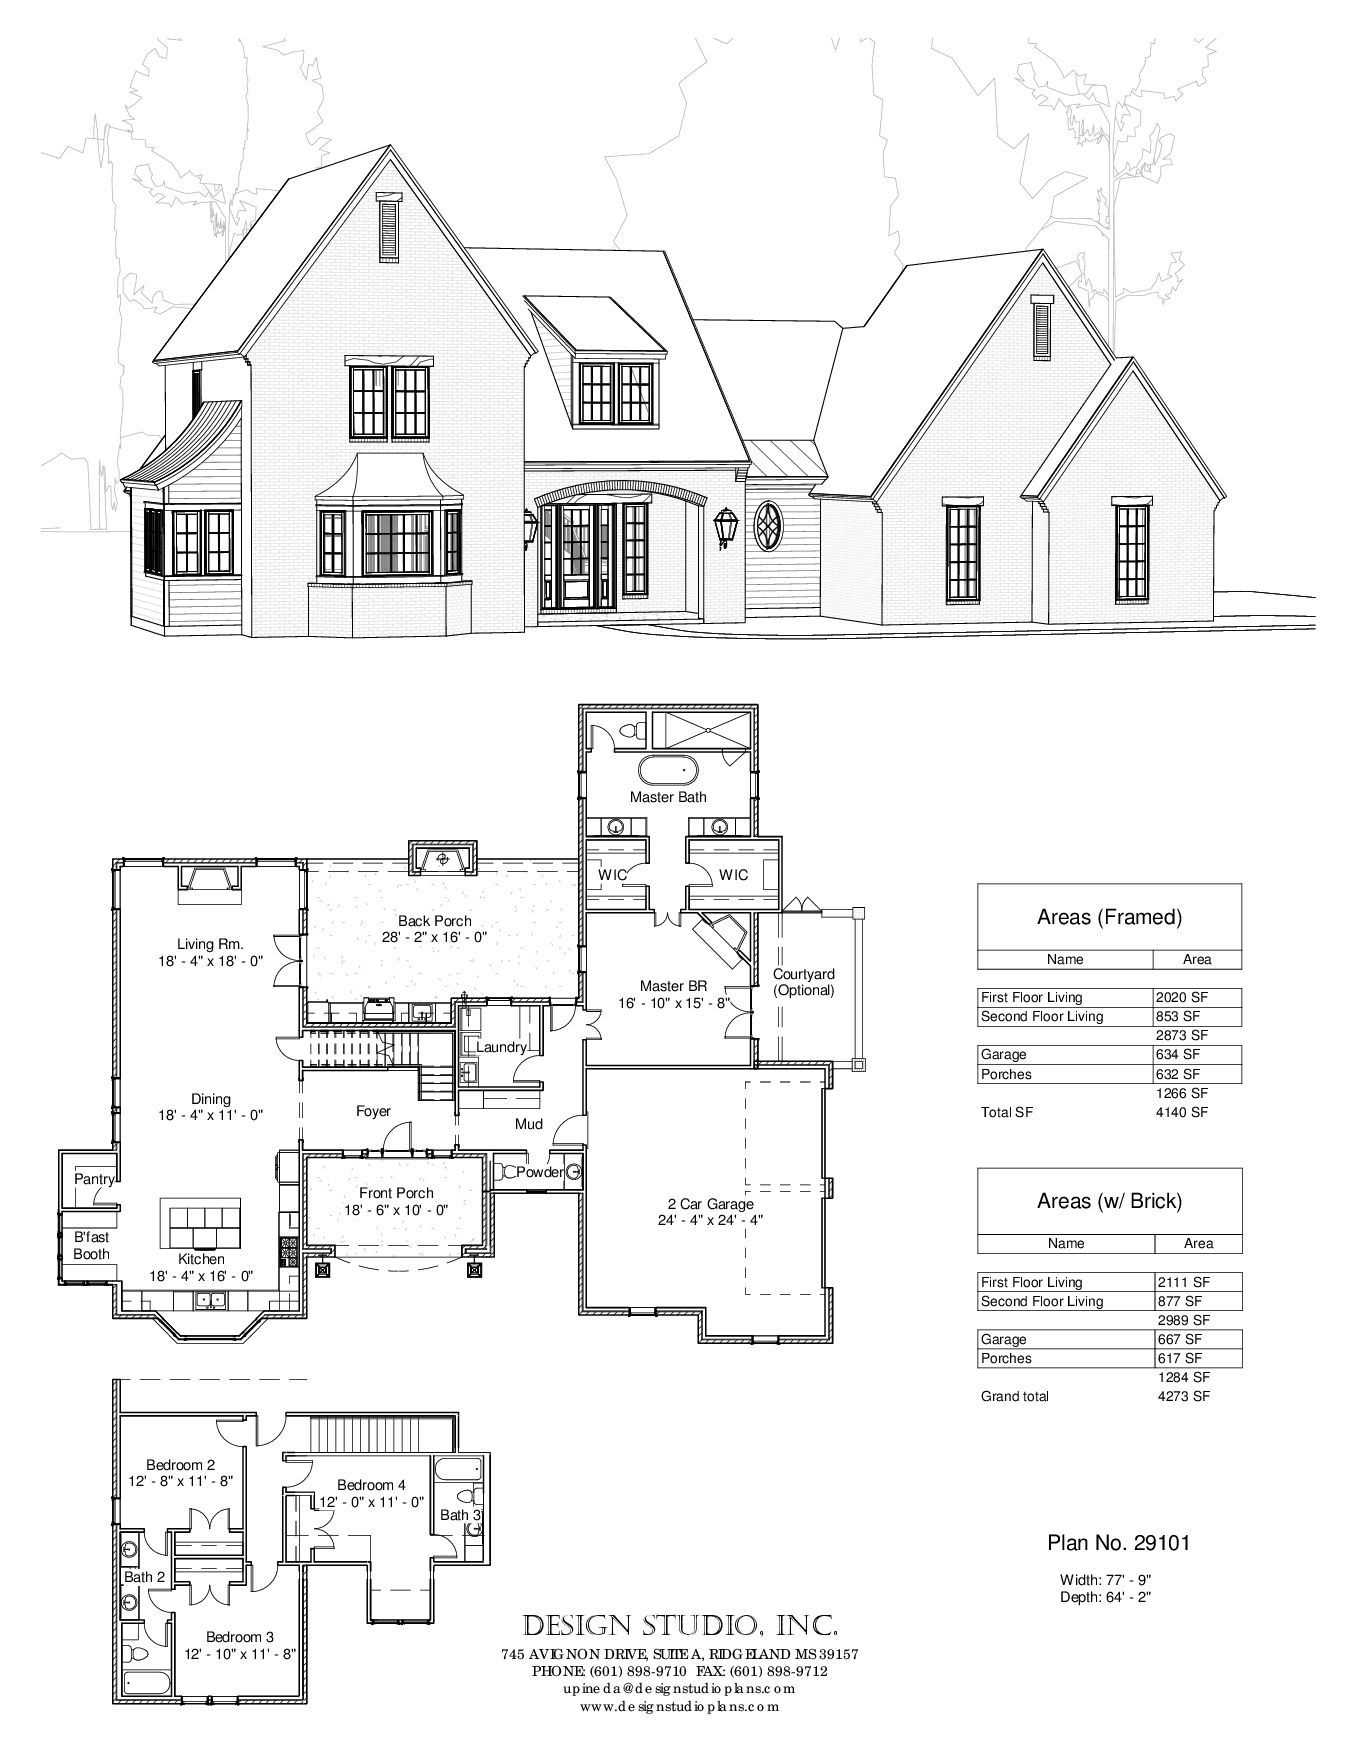 Love This Floorplan Would Change Exterior To Have More Farmhouse Feel Add Porches House Blueprints House Layouts House Plans